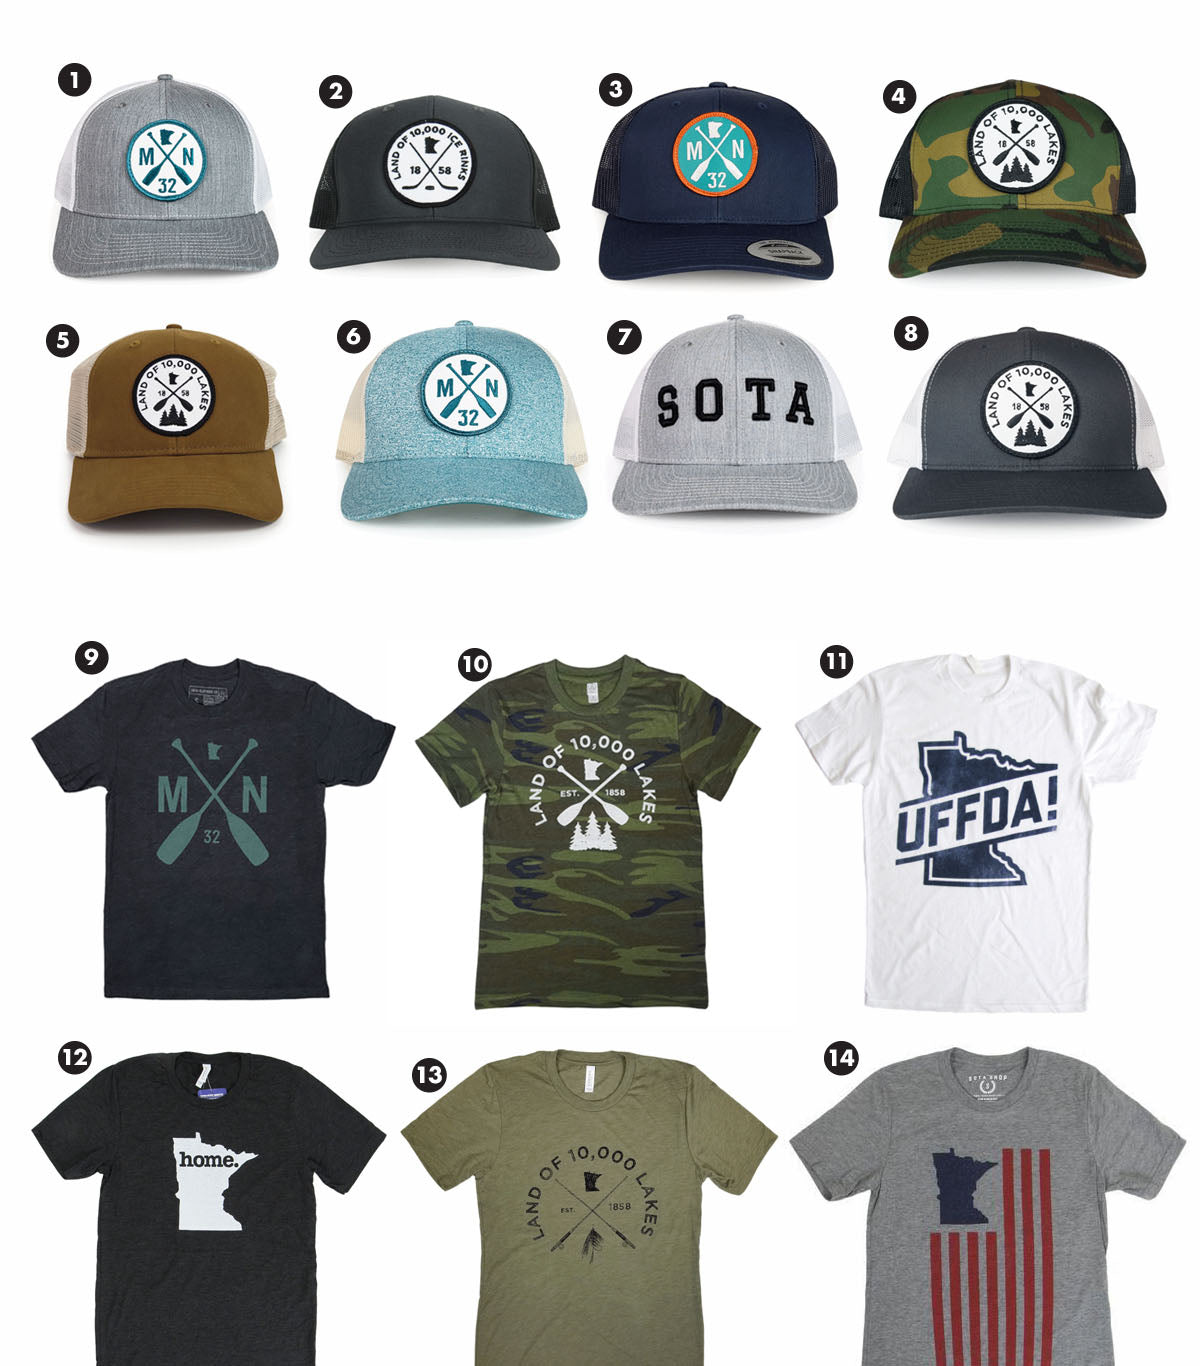 Fathers Day Gifts - Hats and Shirts